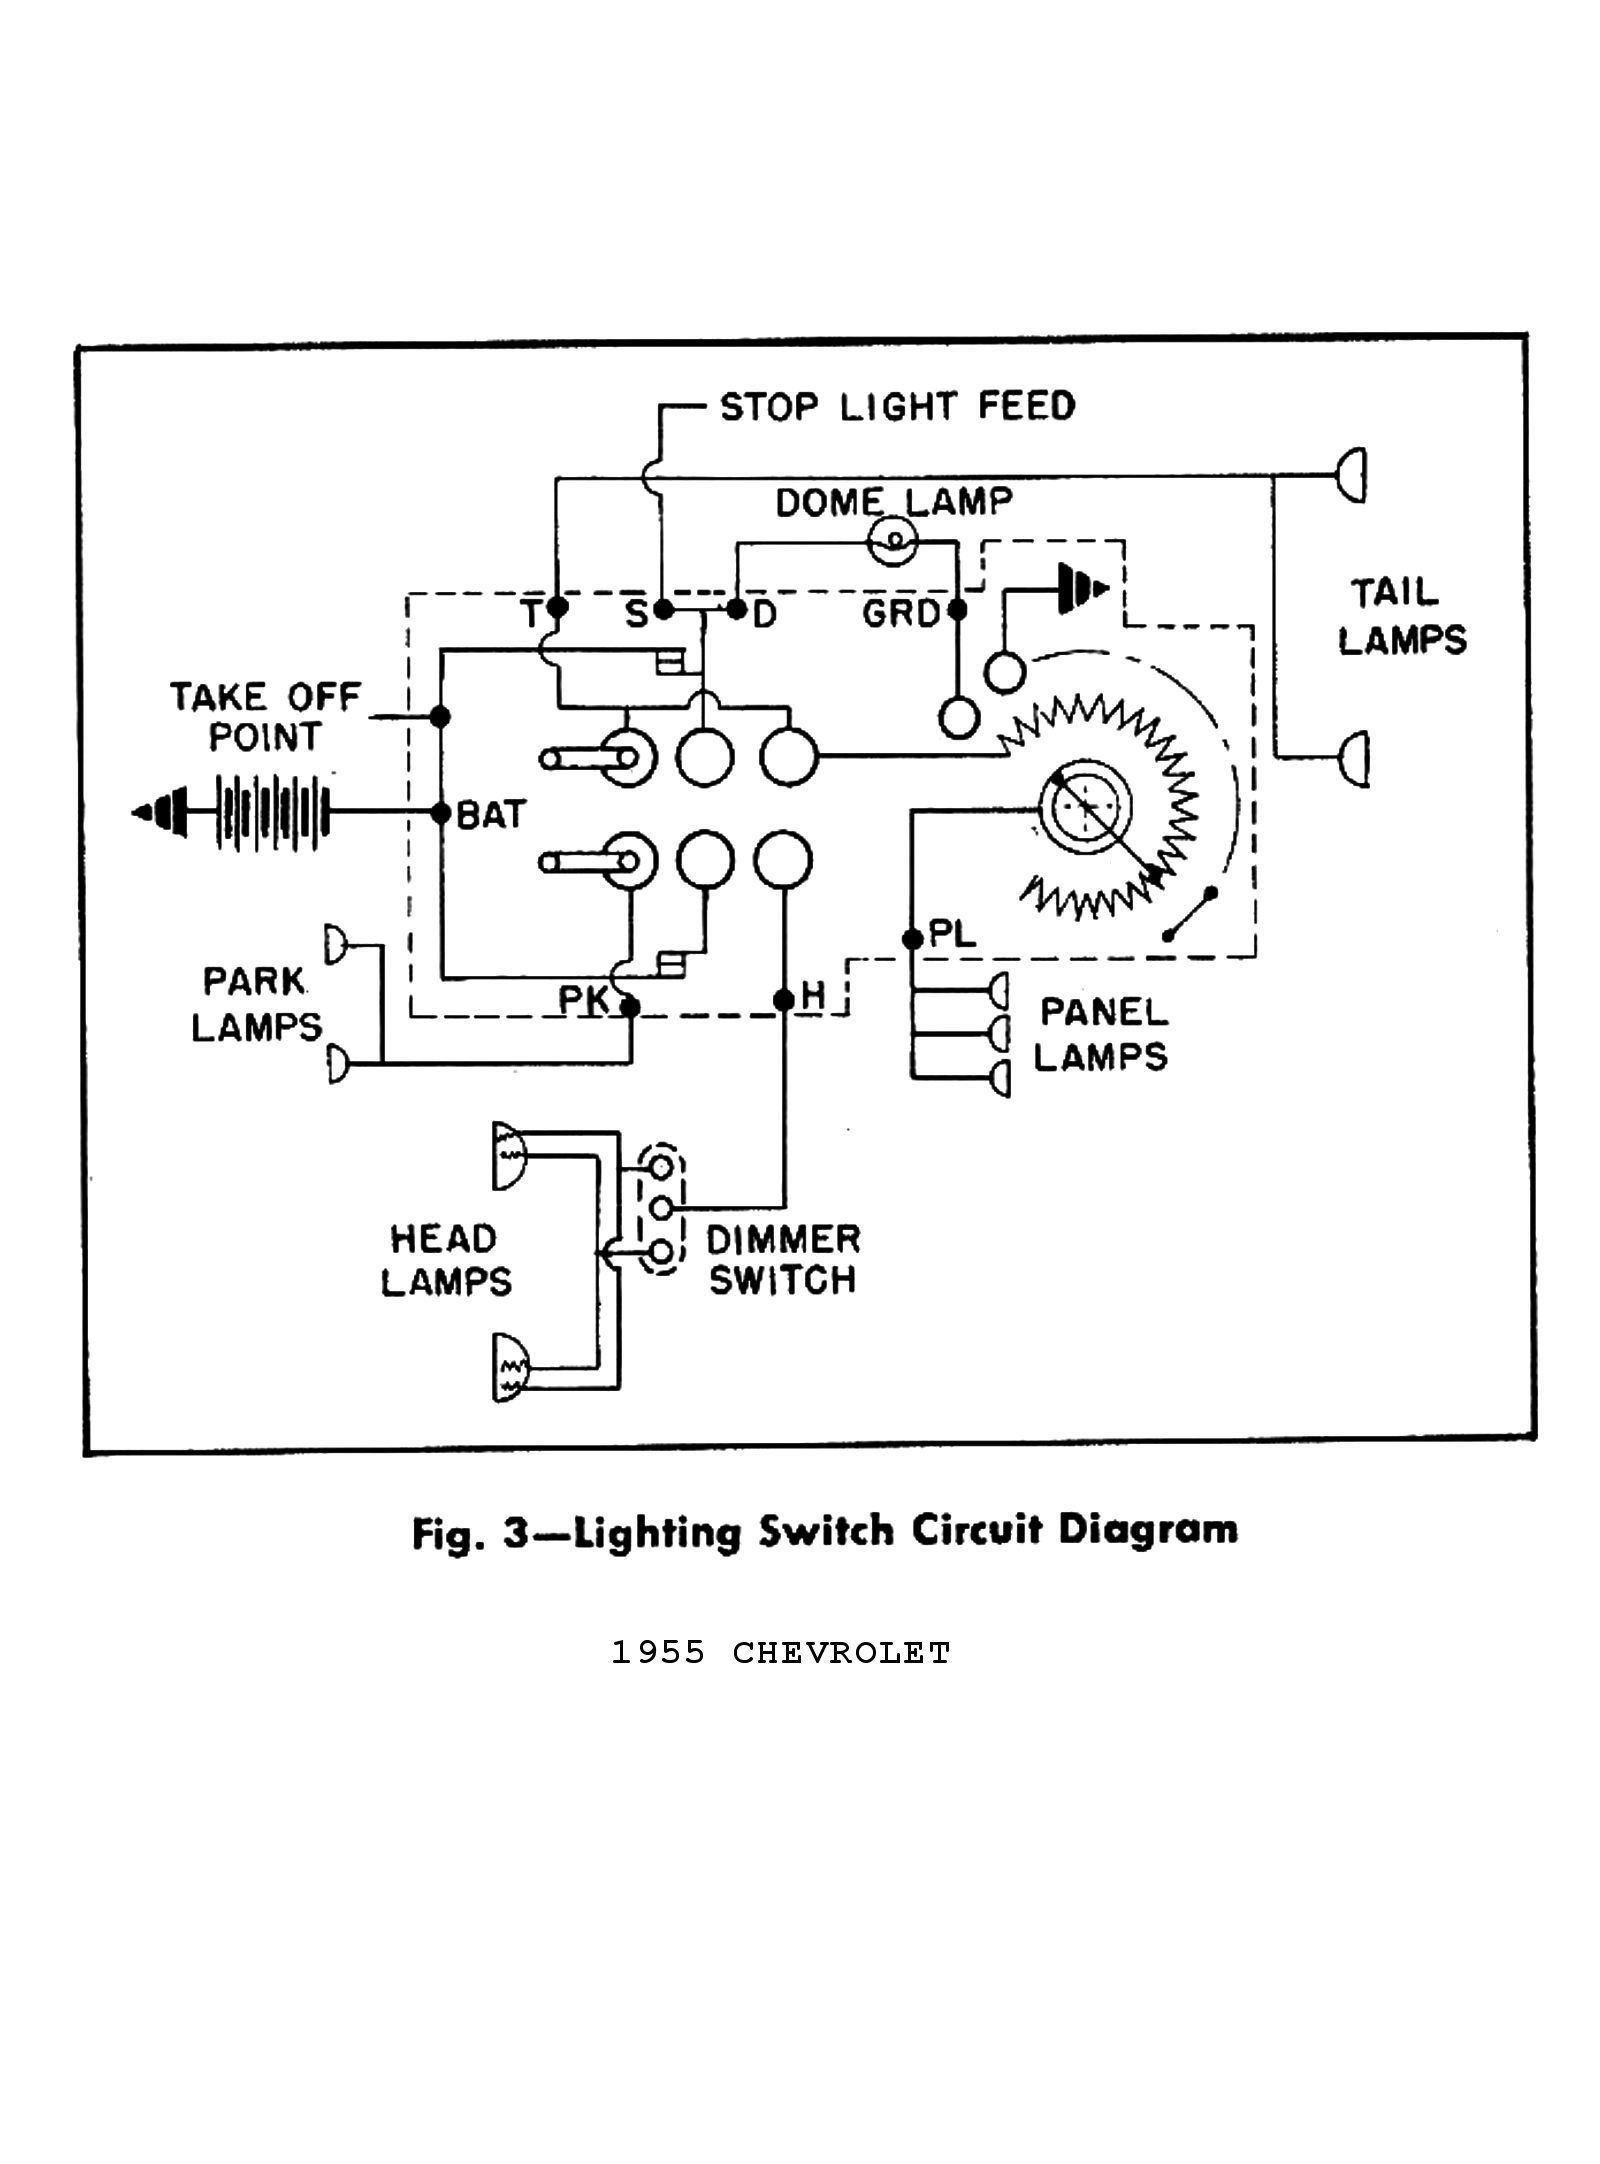 55 chevy ignition switch wiring wiring diagram  1955 chevy ignition switch wiring